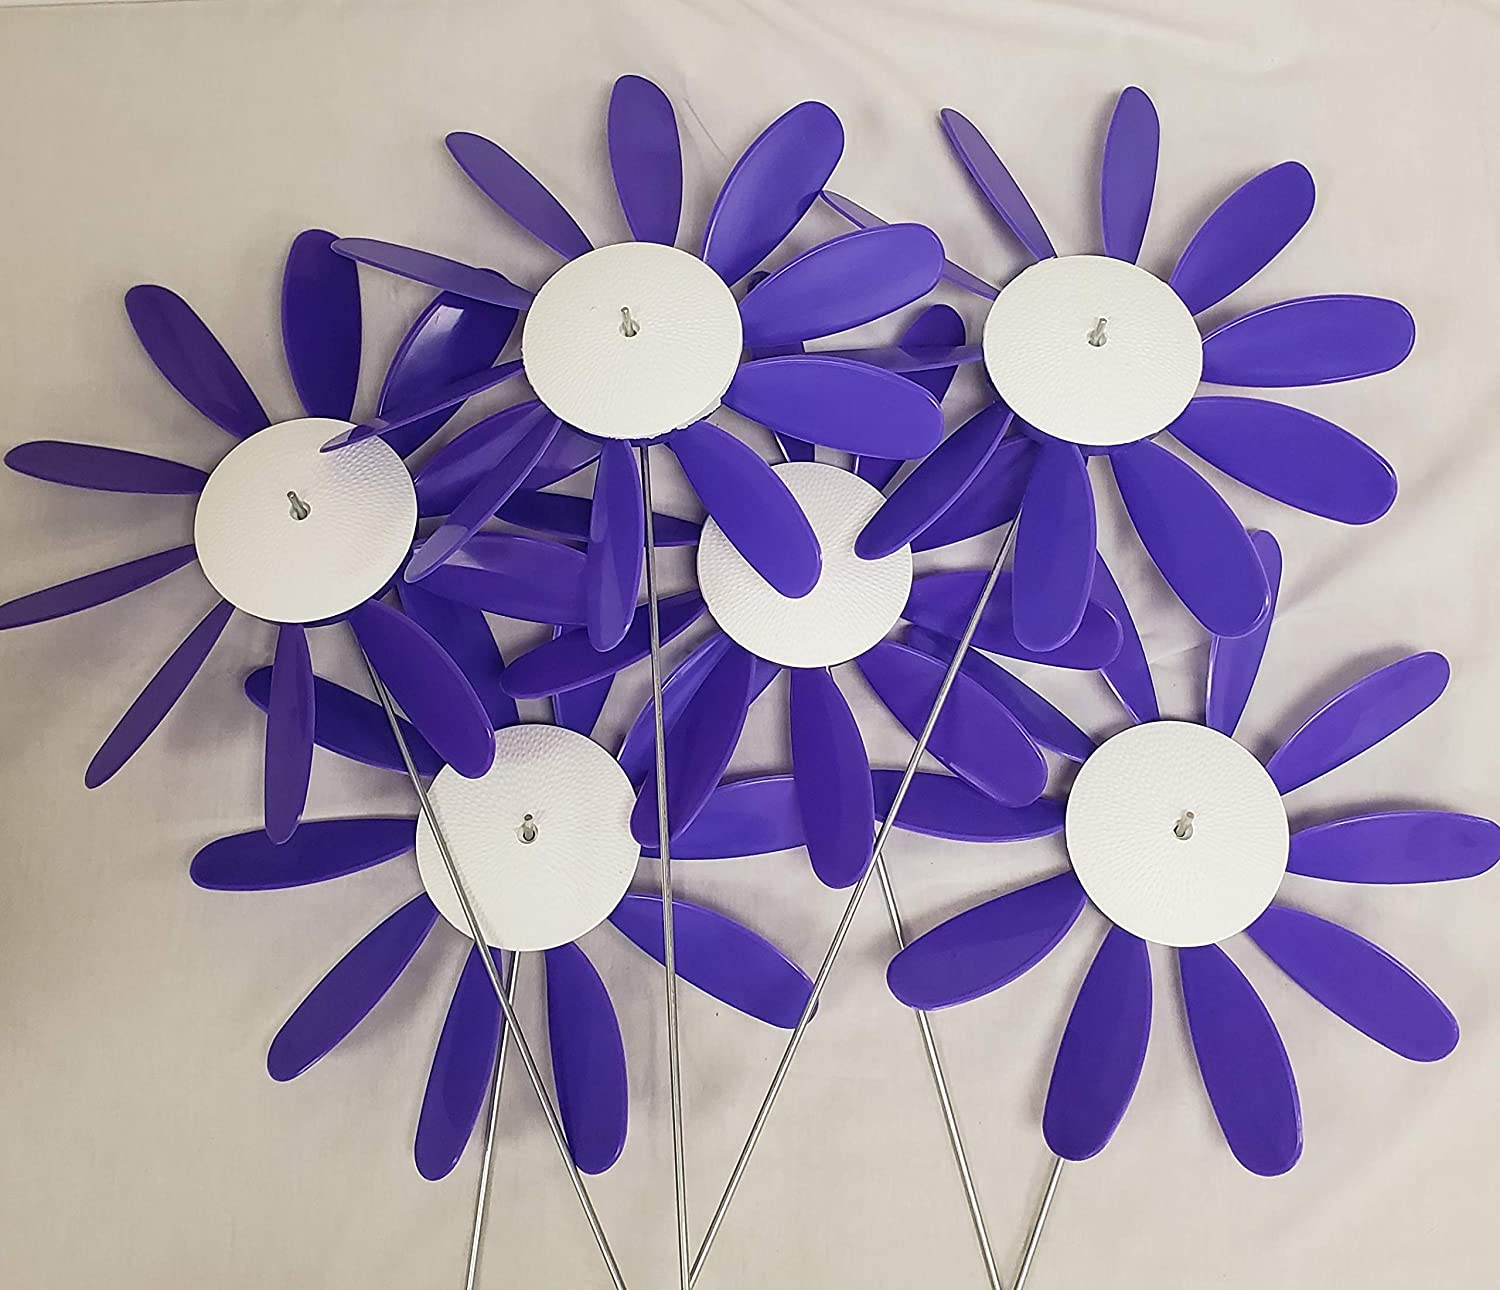 "Domestic Violence,Beloit Plastics 12"" Dia. Spinning Daisy (6 Pack) – 24"" Tall Pinwheel & Wind Spinner for Garden,Lawn,Patio – Vibrations May Irritate Moles - Front & Back Yard Decoration – USA Made"